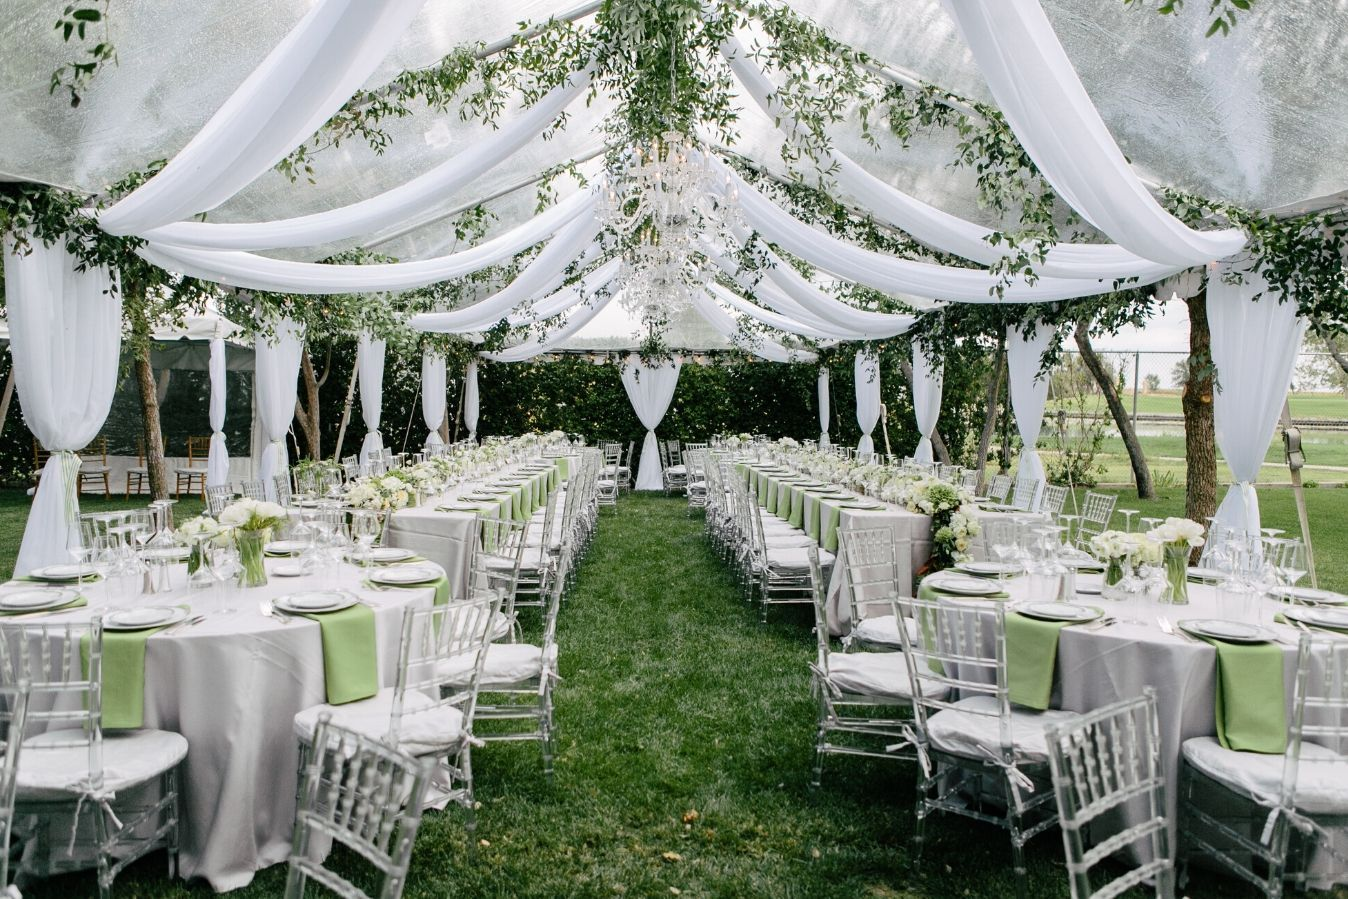 How to Choose the Right Wedding Drapery Fabric